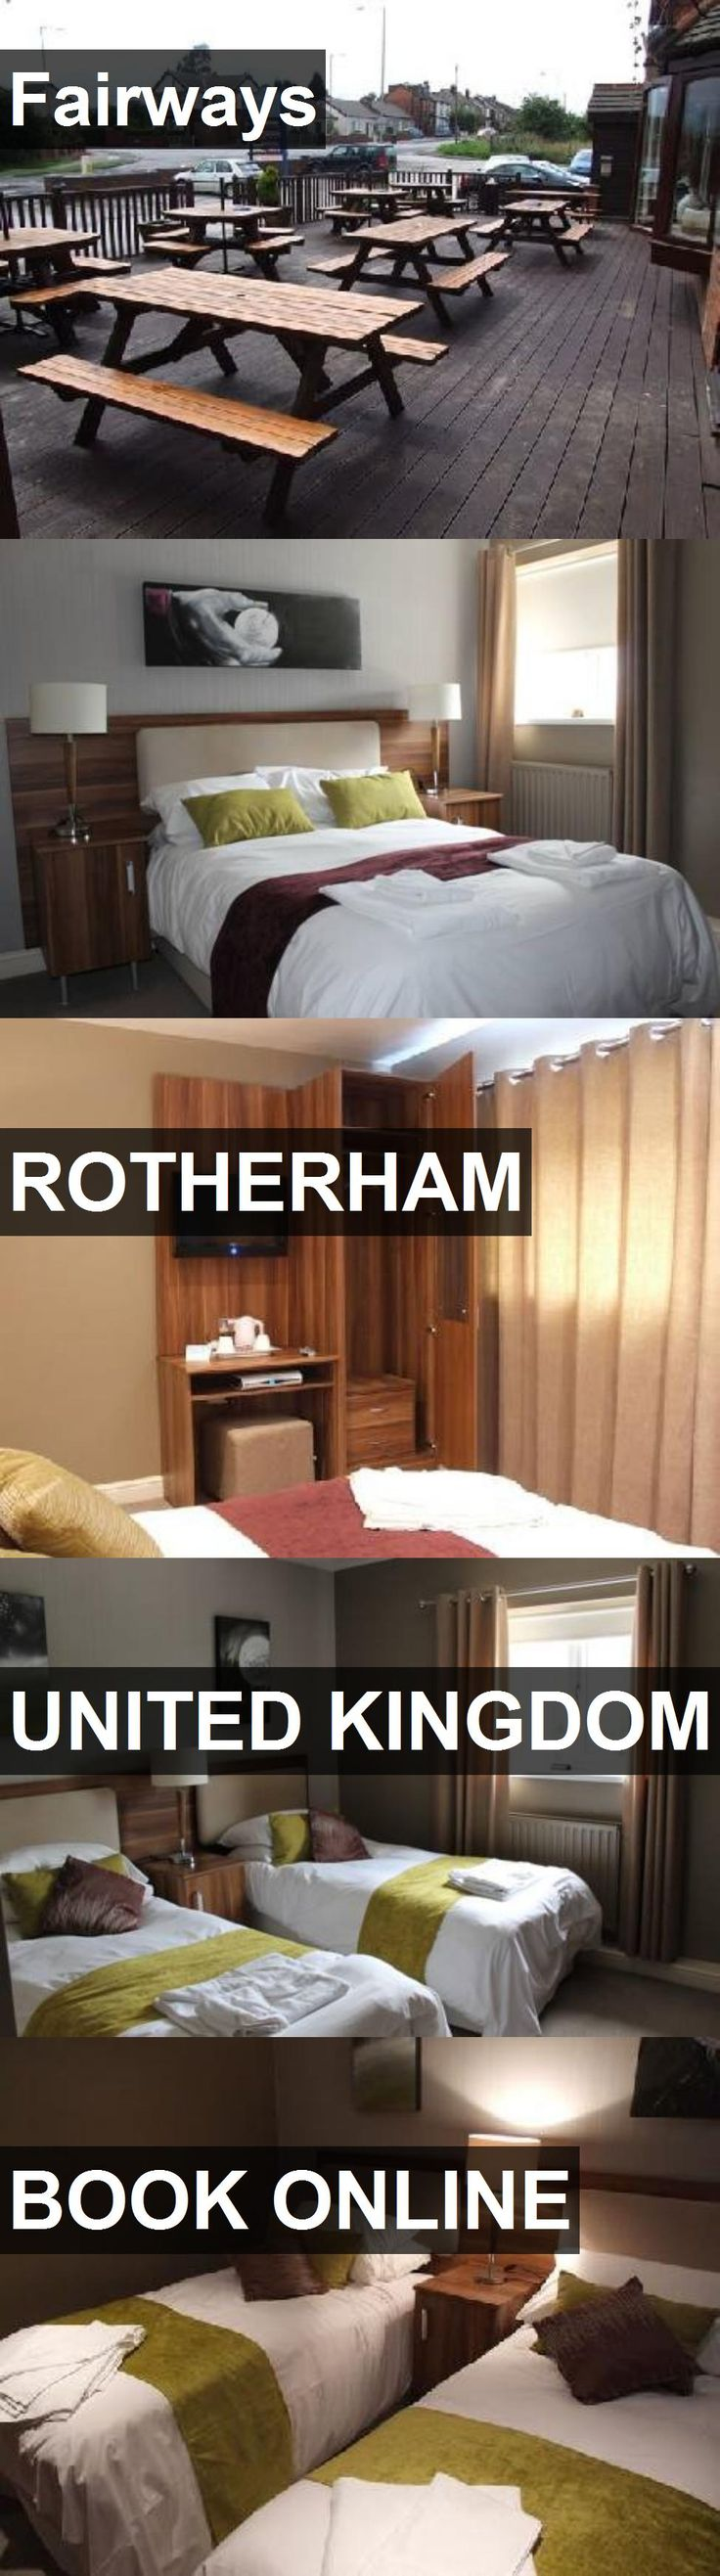 Hotel Fairways in Rotherham, United Kingdom. For more information, photos, reviews and best prices please follow the link. #UnitedKingdom #Rotherham #travel #vacation #hotel